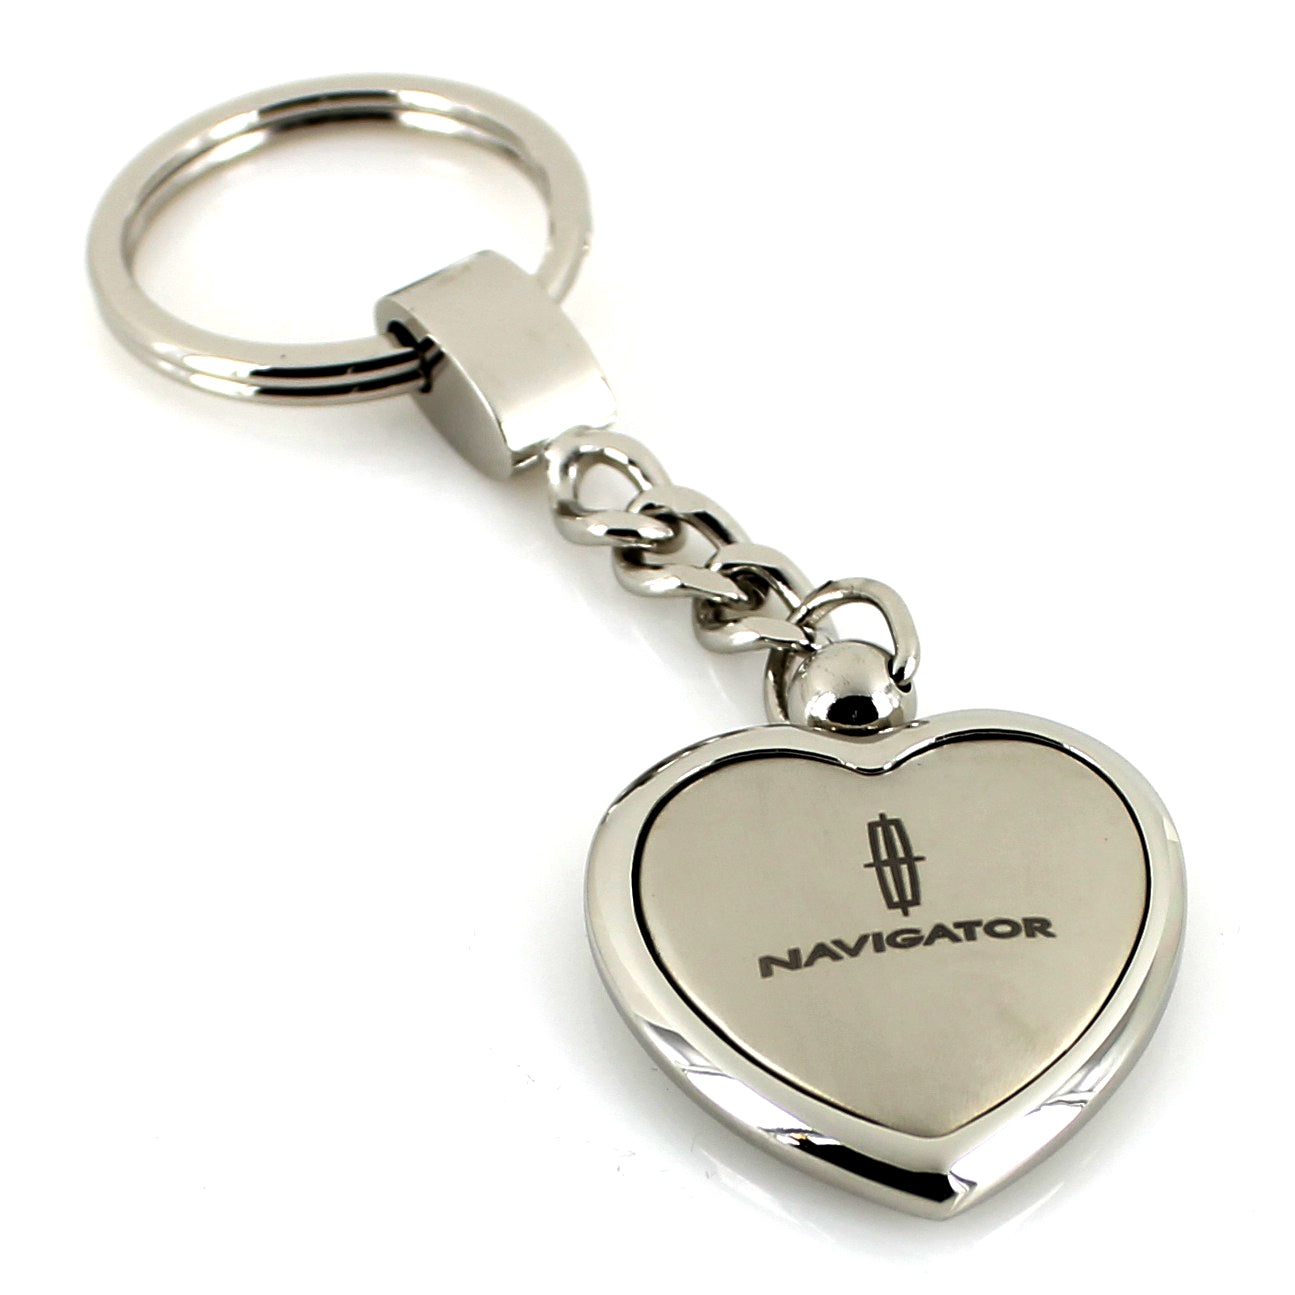 Lincoln Navigator Heart Shape Chain Keychain (Chrome) - Custom Werks